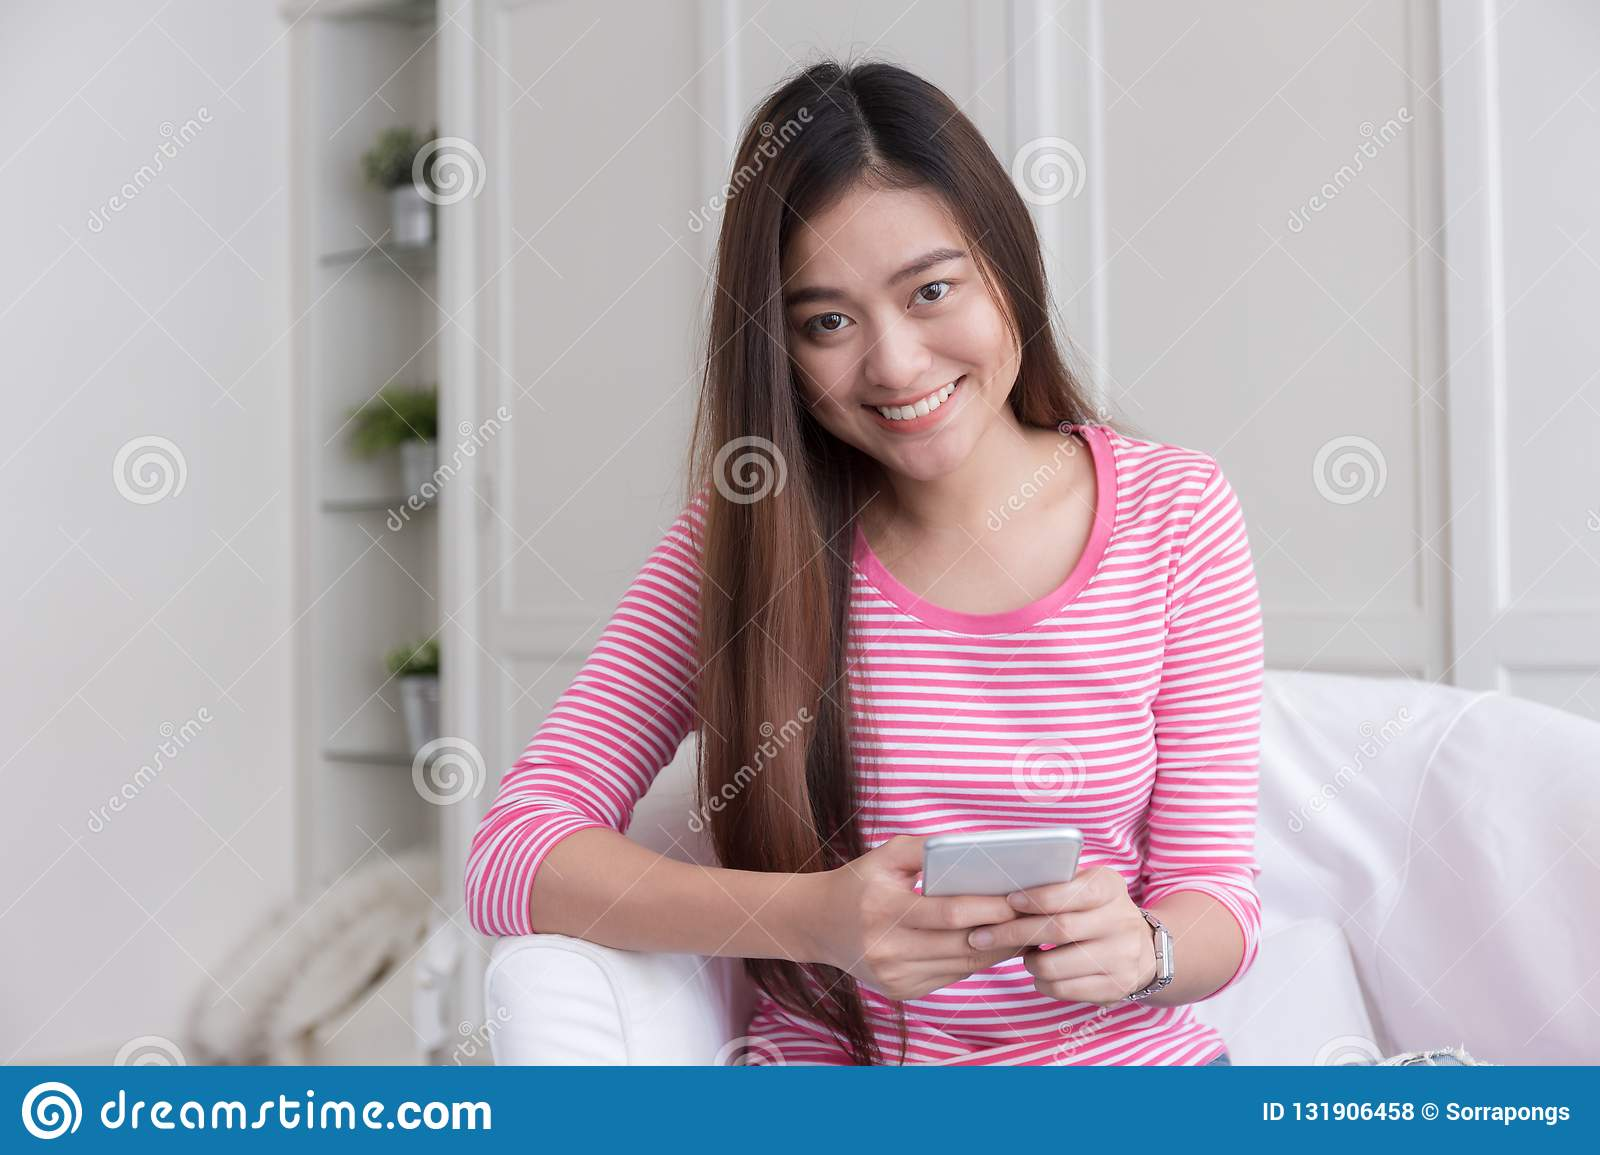 Asian woman is smiling and using smartphone on blurred background at white bedroom.